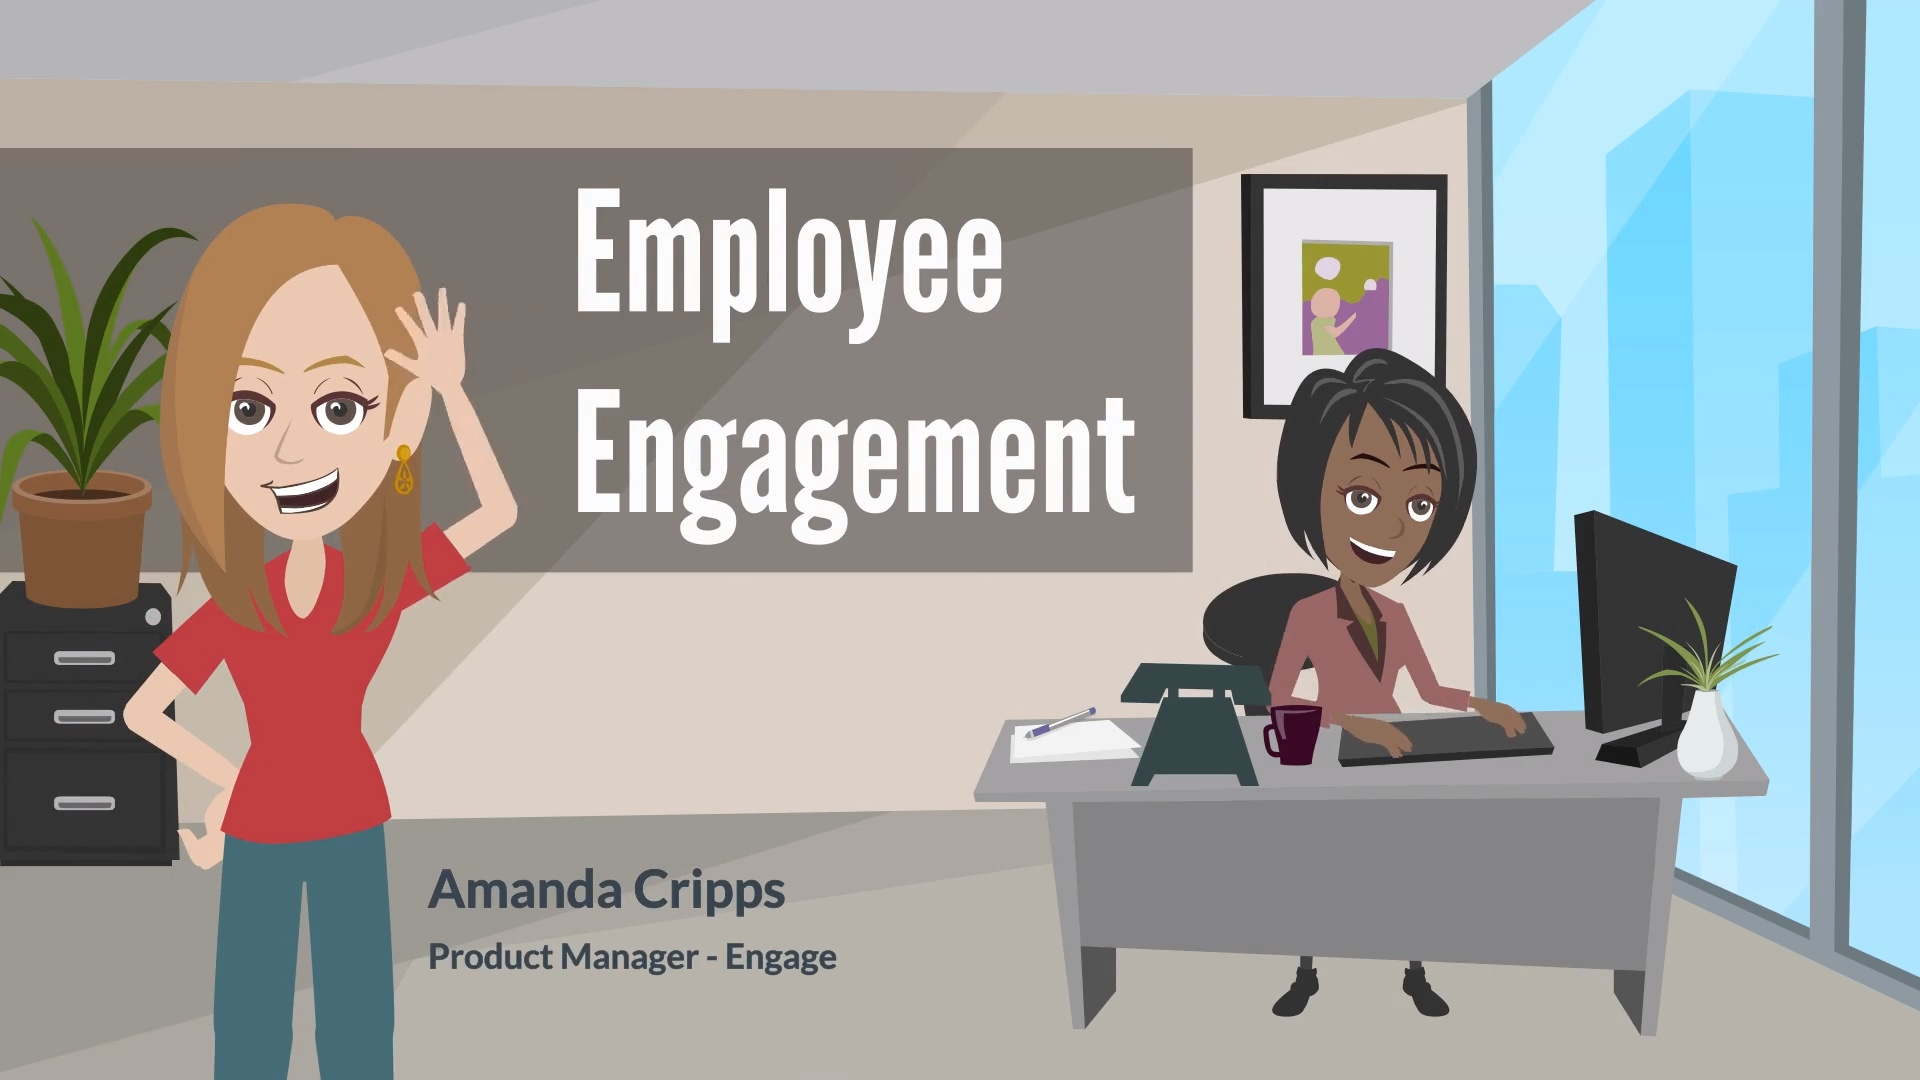 Employee Engagement Power Up